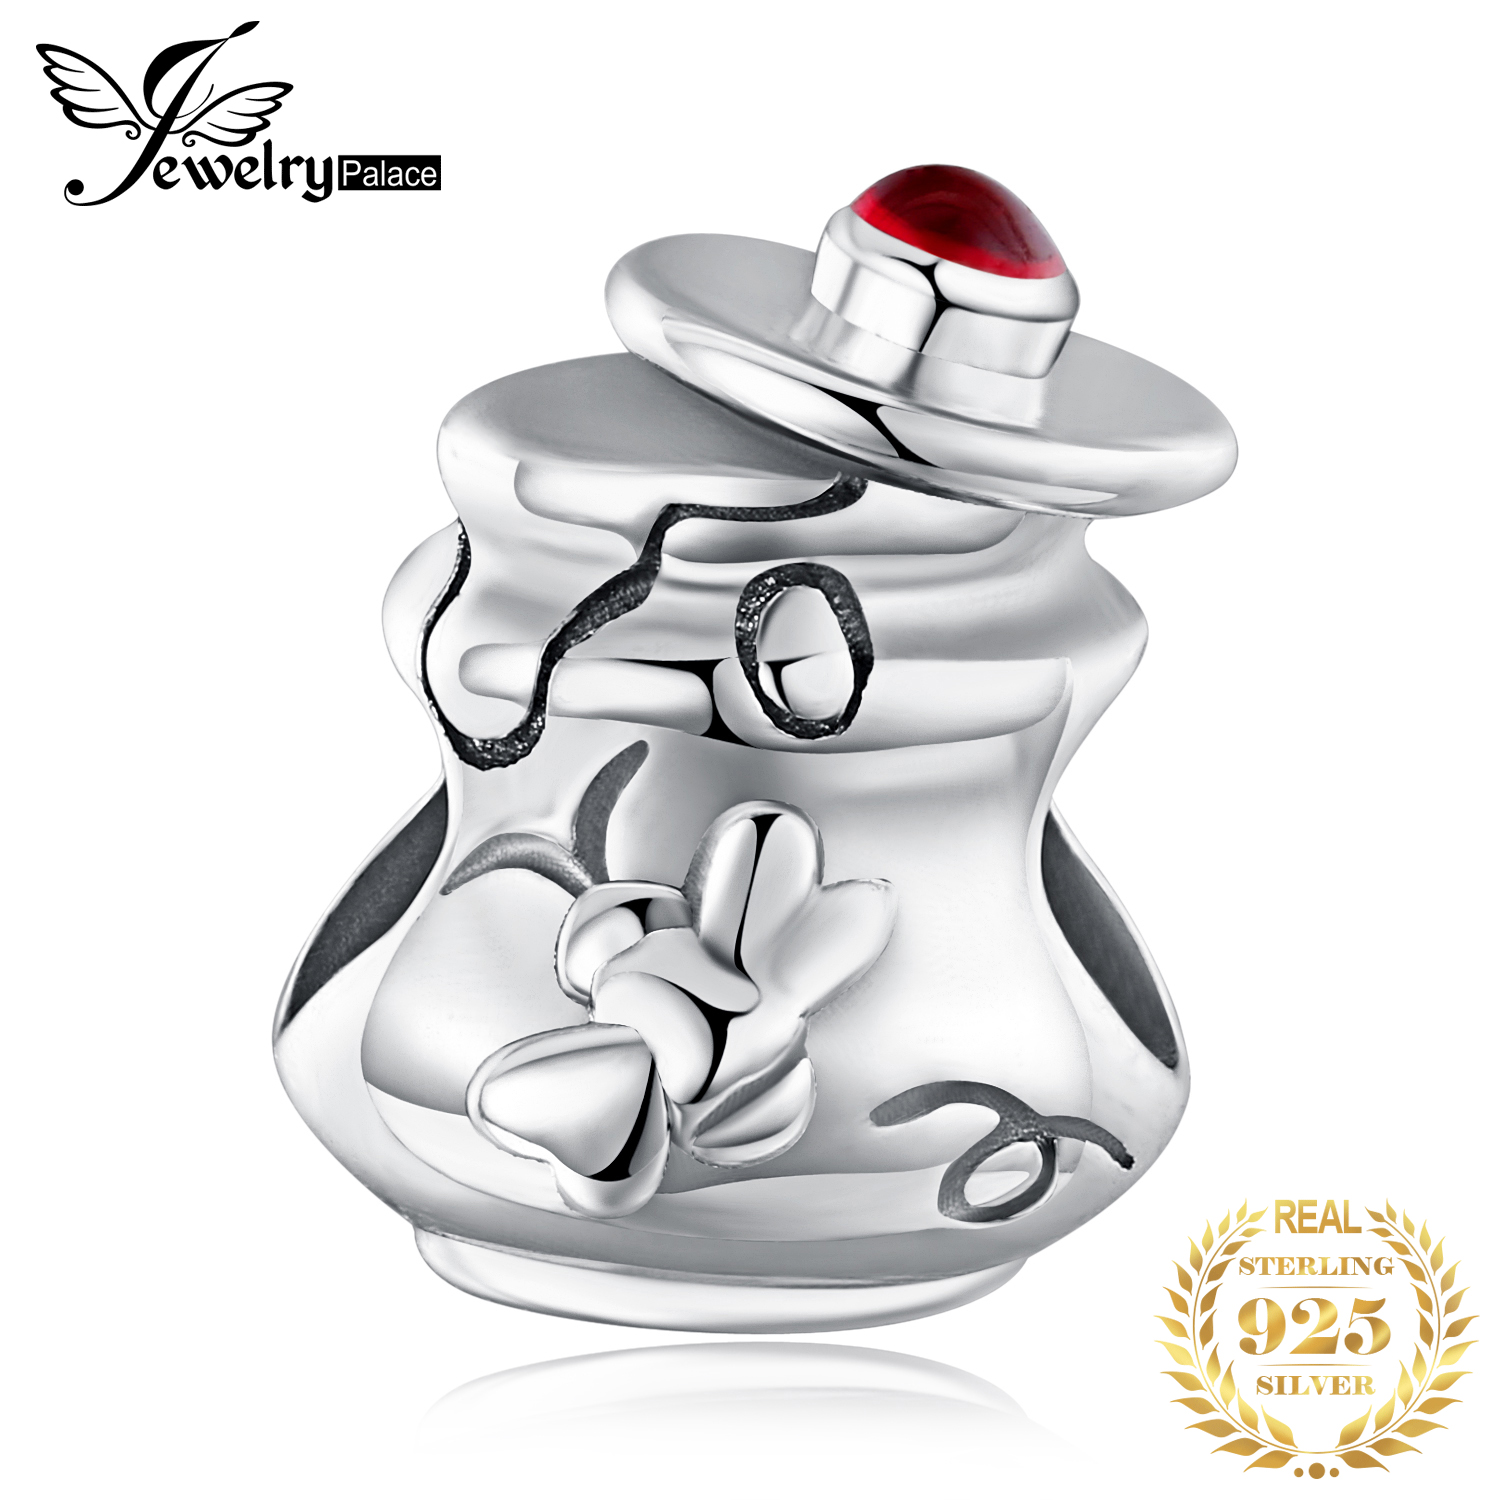 JewelryPalace Vintage 925 Sterling Silver Honey Pot Beads Charms Fit Bracelets Trendy Jewelry Gift Beads For Women Hot Selling